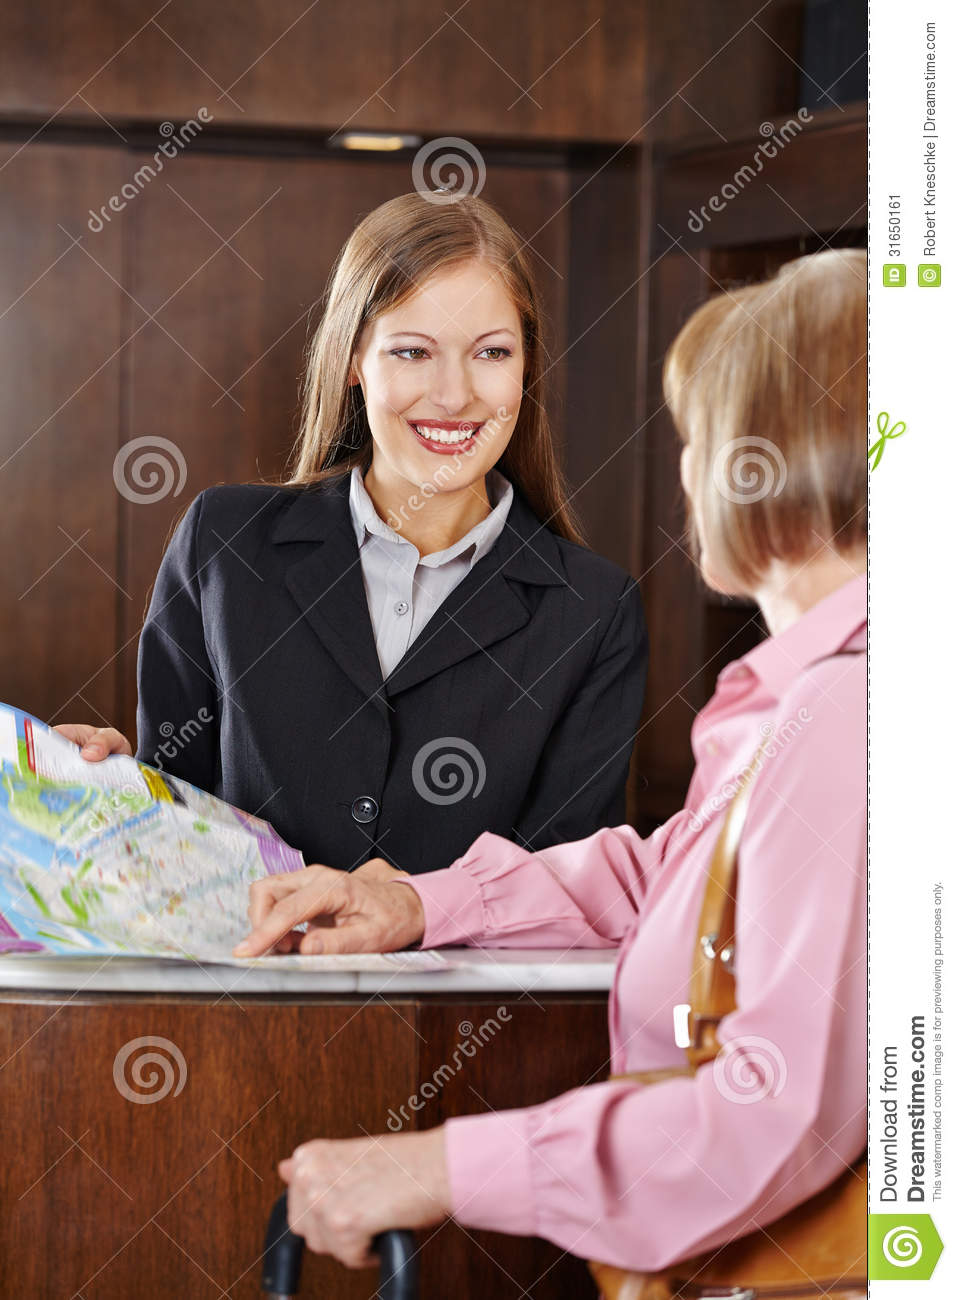 Receptionist In Hotel Offering City Map Stock Image ...